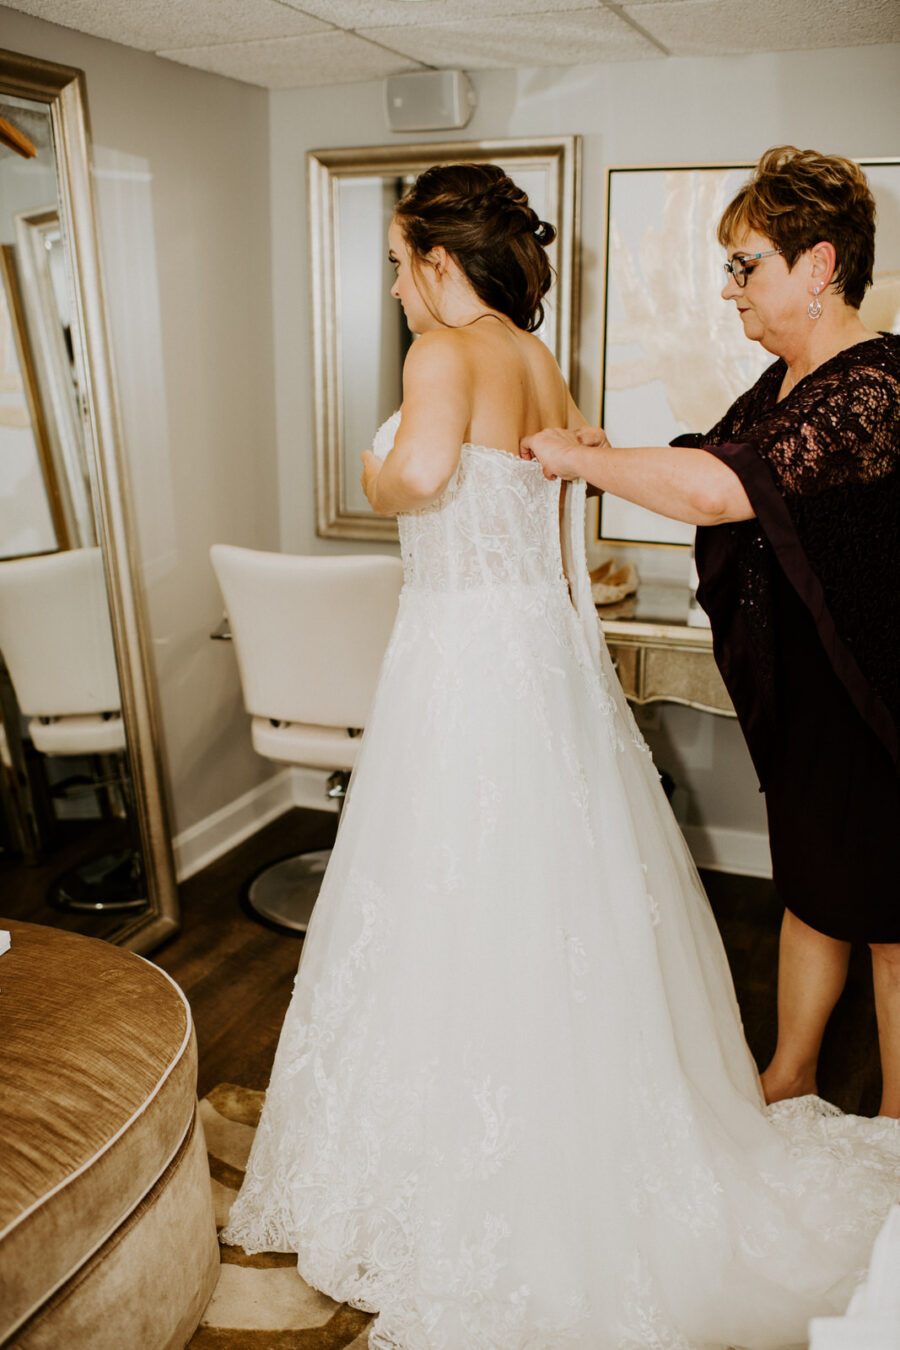 Bride getting ready in wedding dress: Romantic Nashville Wedding at The Bedford featured on Nashville Bride Guide